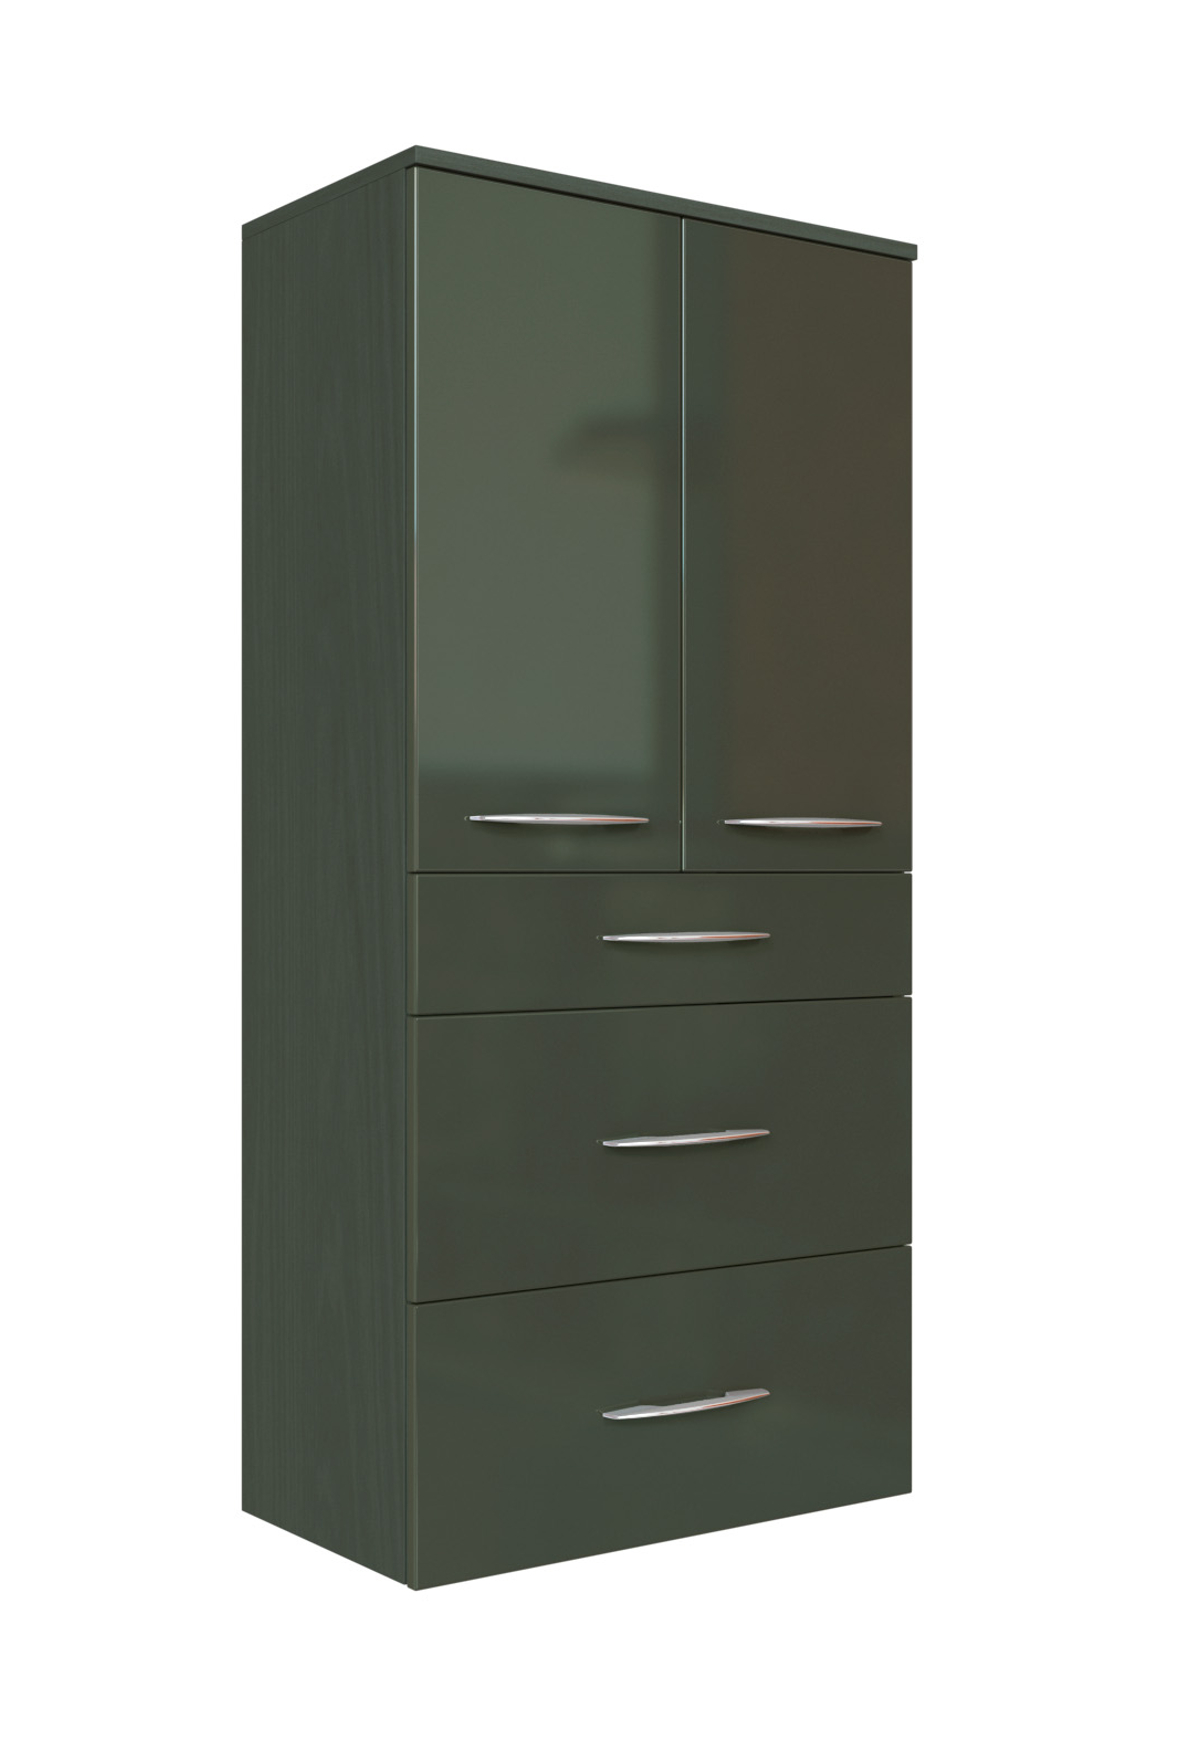 bad midischrank florida 2 t rig 60 cm breit hochglanz grau graphitgrau bad bad midischr nke. Black Bedroom Furniture Sets. Home Design Ideas